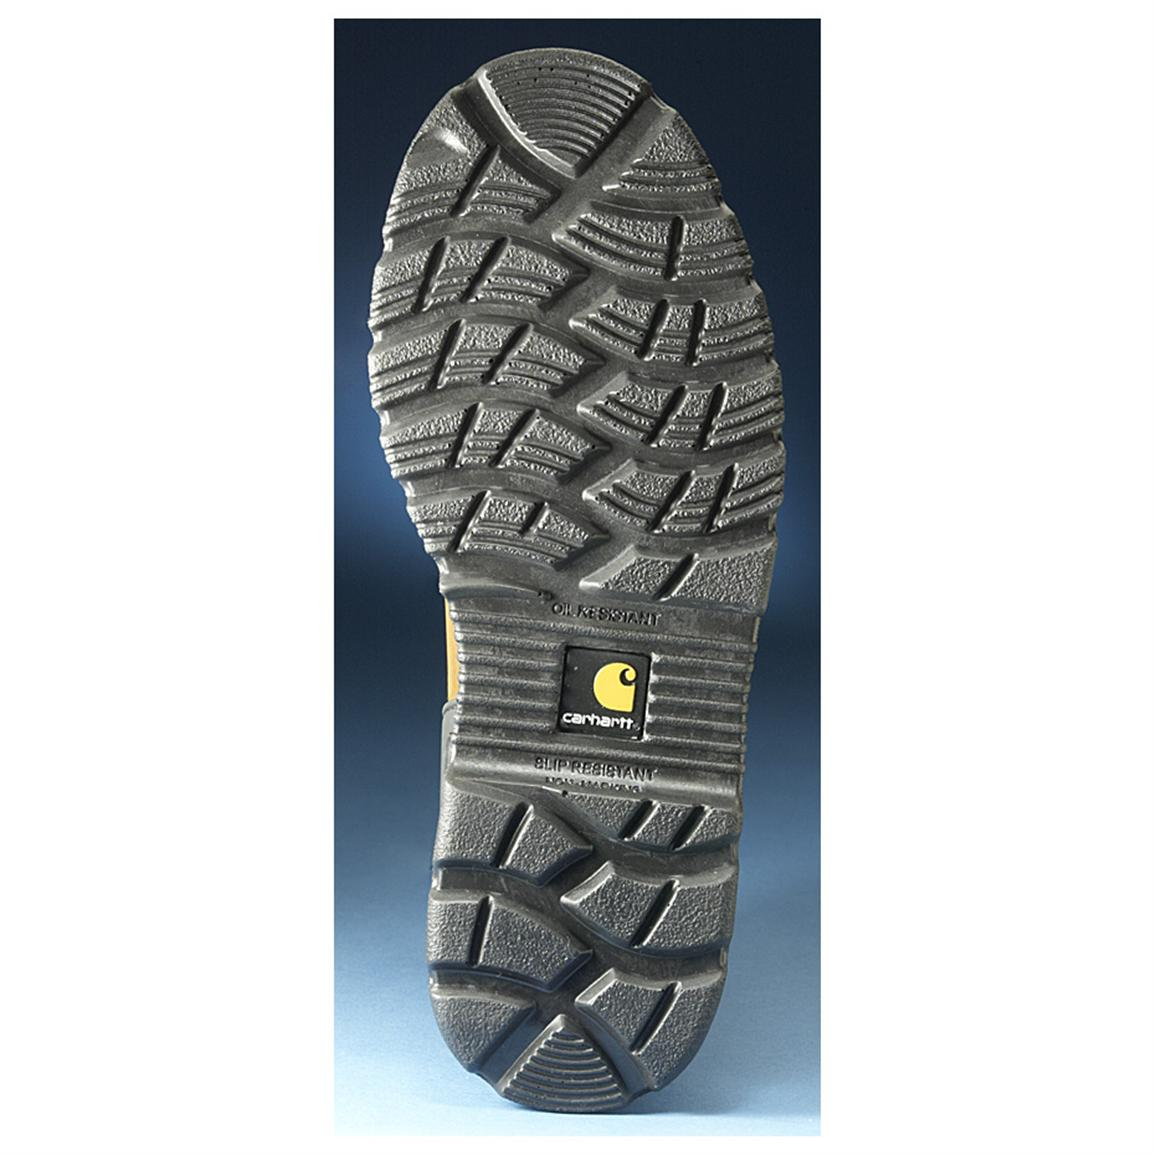 Dual-density polyurethane outsole is oil, chemical and slip resistant